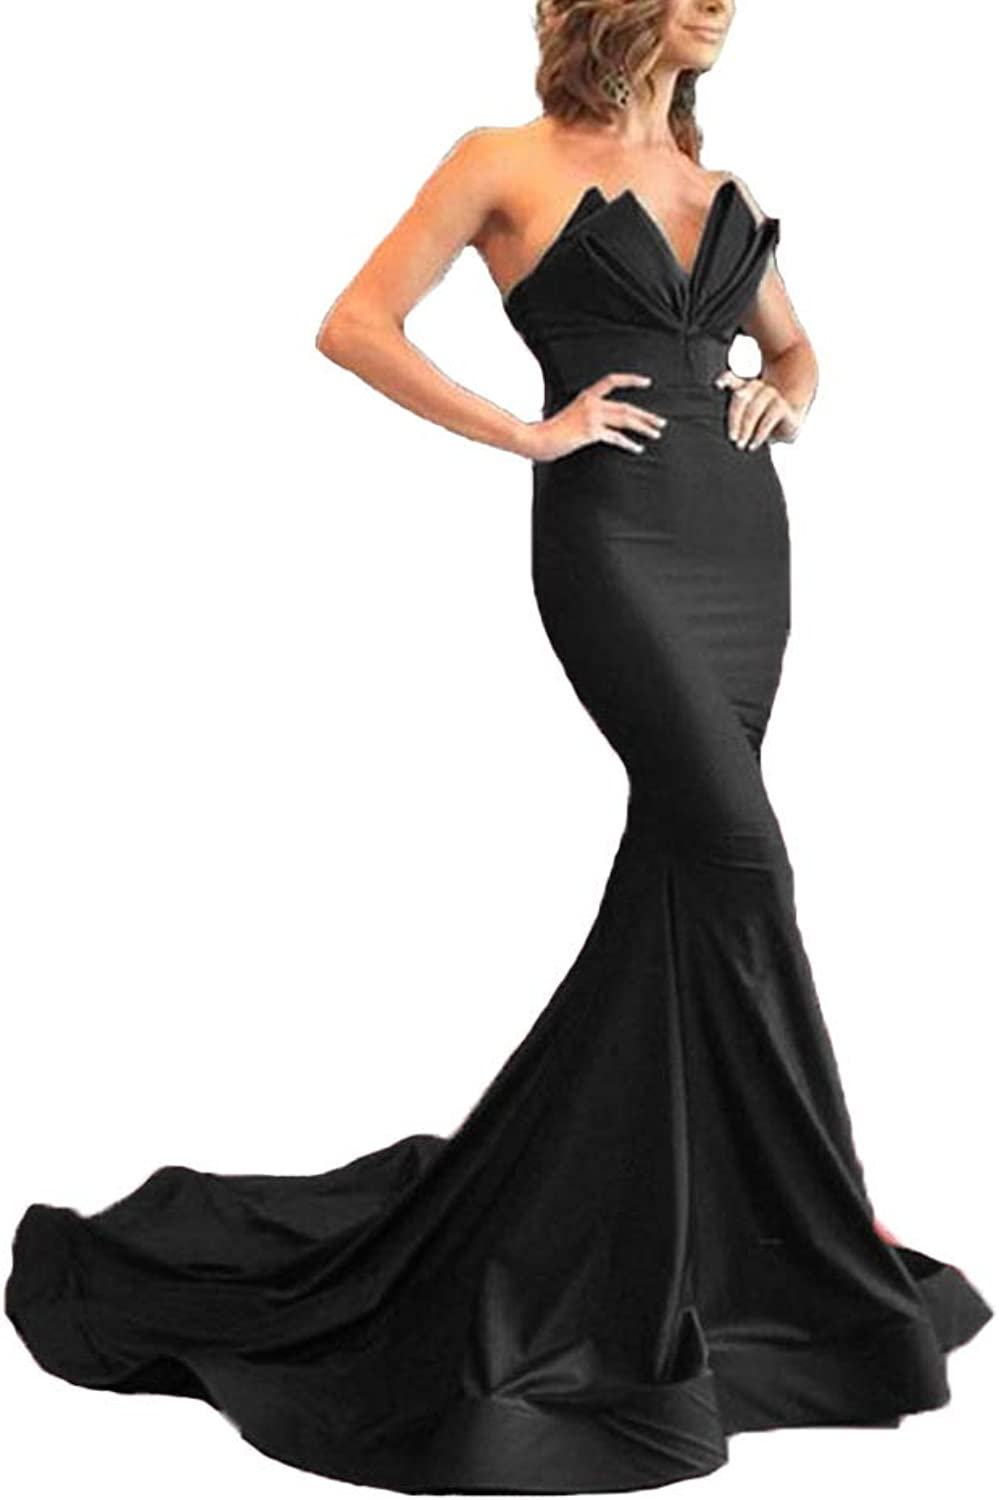 XingMeng Women's Long Mermaid Prom Evening Dresses Sexy Satin Formal Party Gown